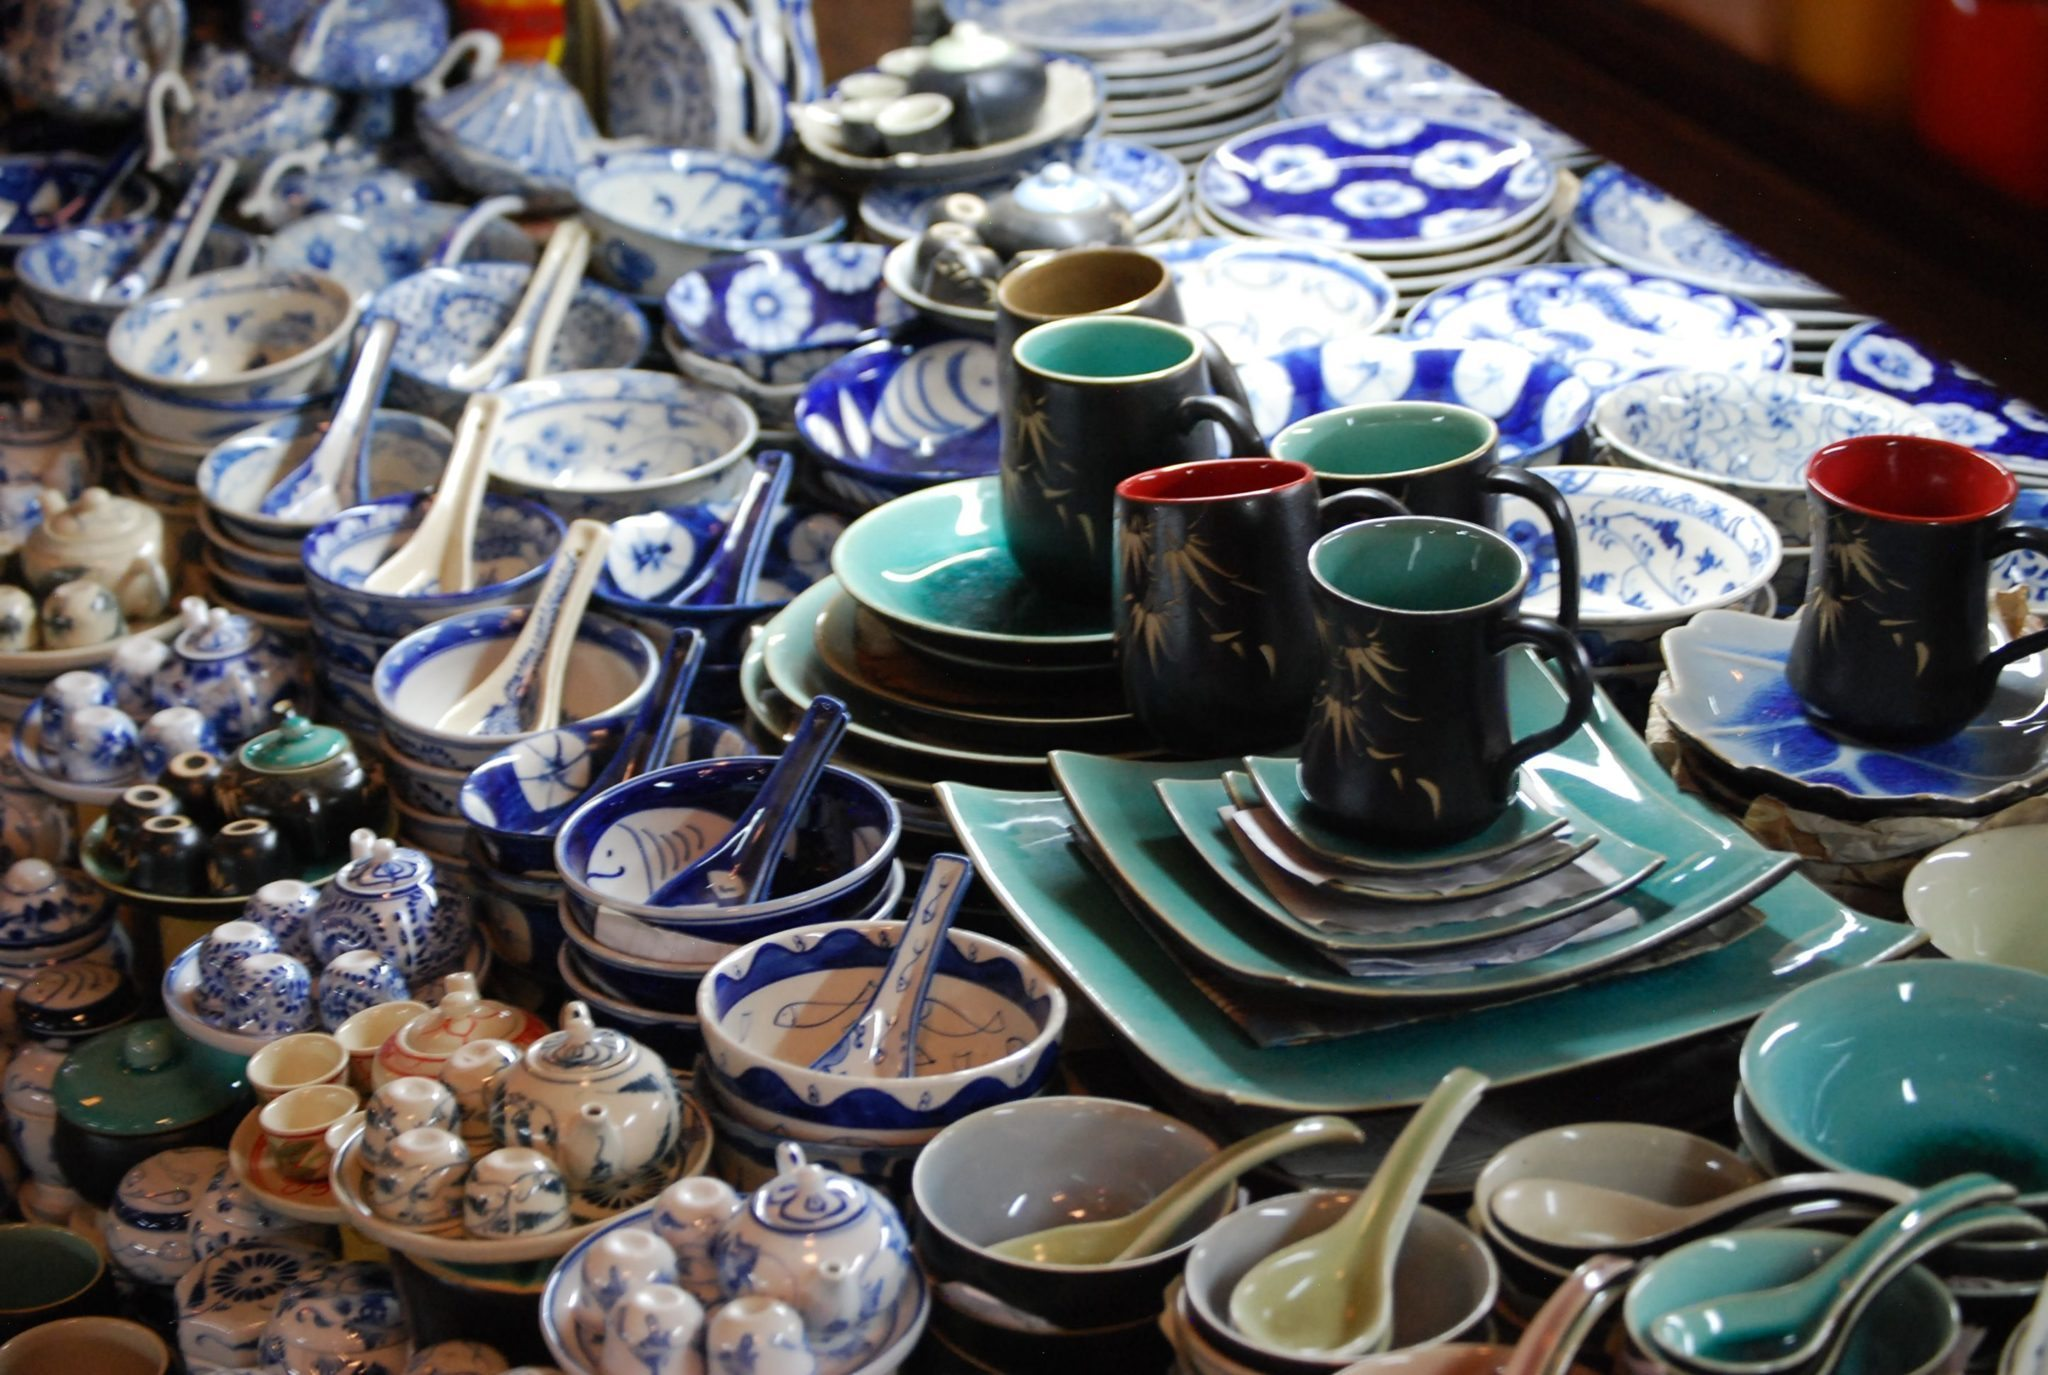 ceramics in Russian Market ... & The Excellent and Fun Russian Market in Phnom Penh Cambodia ...